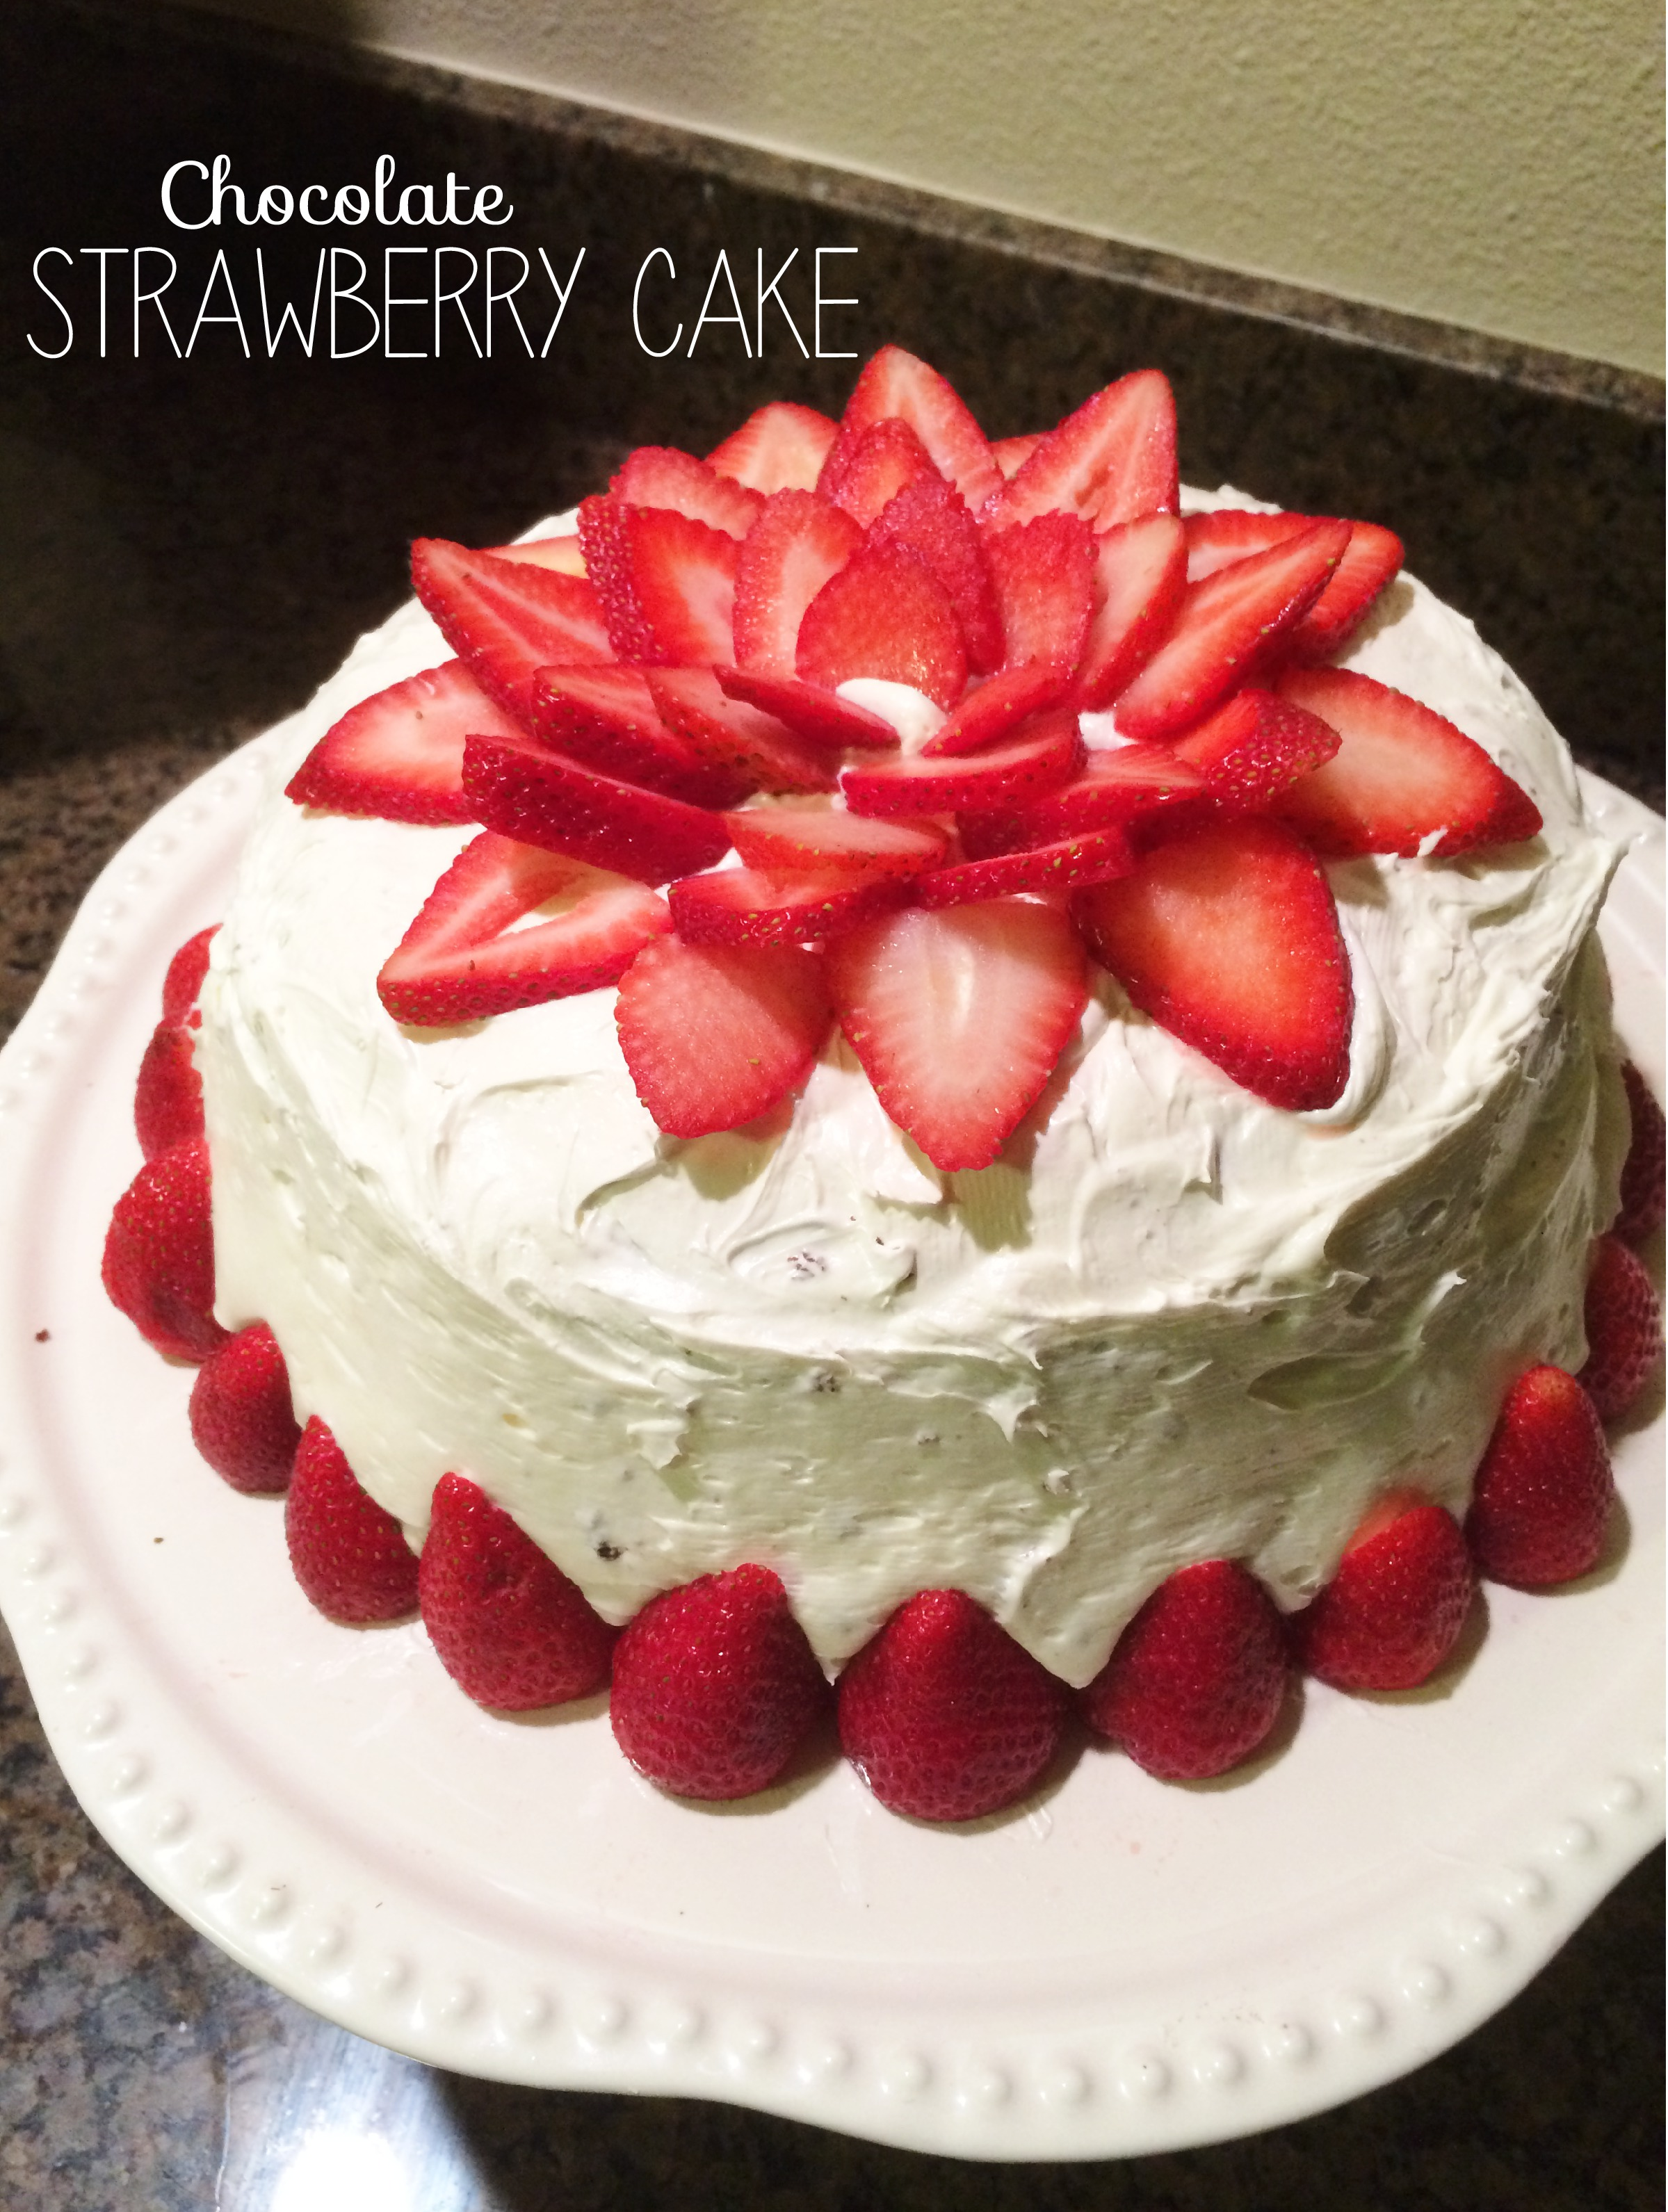 strawberry cake decoration decorating with strawberries the project 229